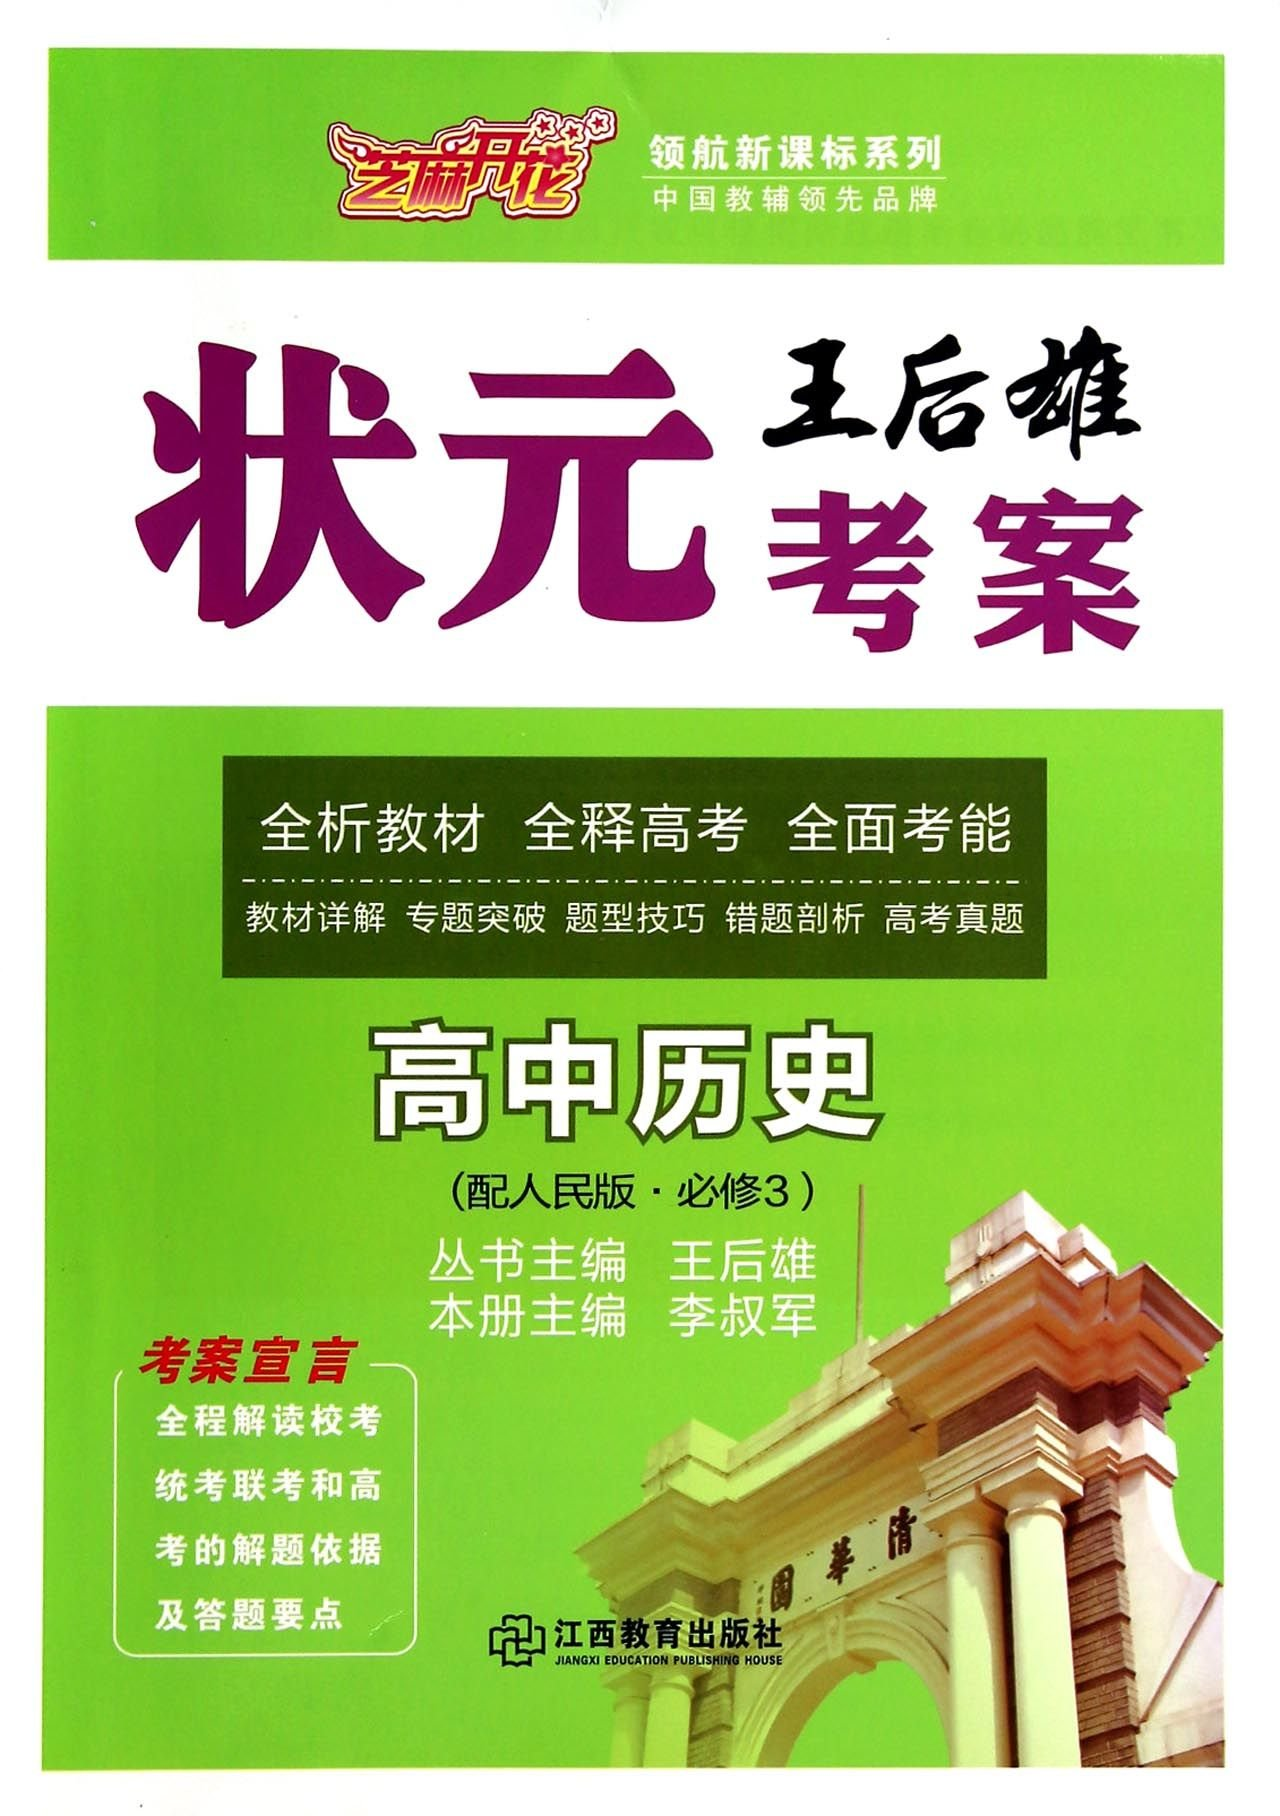 Read Online Zhimakaihua Wang Houxiong Series champion New Curriculum pilot test case: a high school history (with the People edition Compulsory 3)(Chinese Edition) PDF Text fb2 book